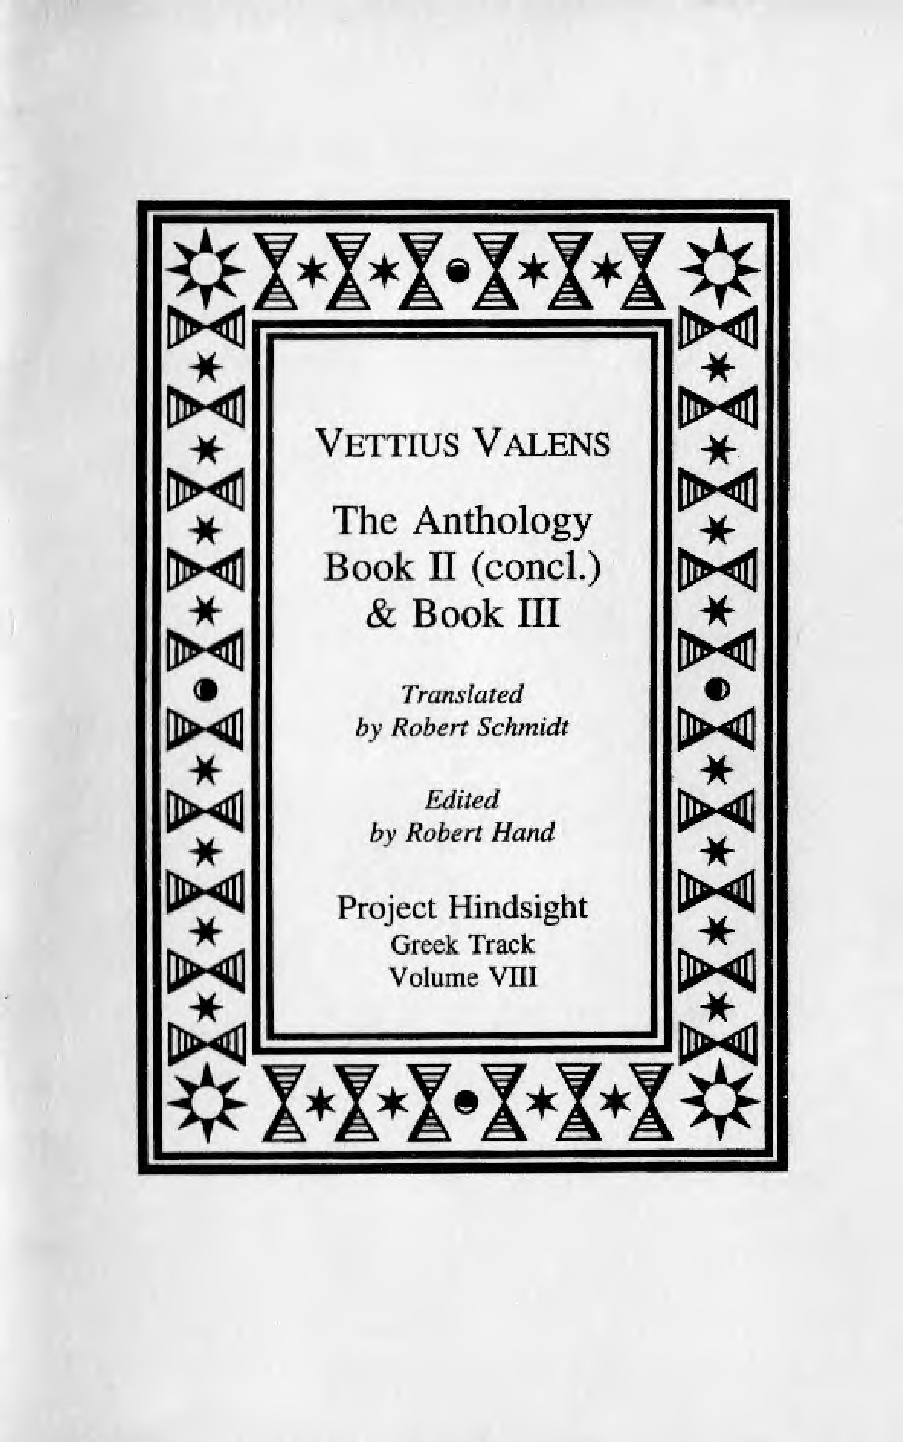 Vettius Valens: The Anthology Book II (concl.) and Book III (Project Hindsight Greek Track, Volume VIII)